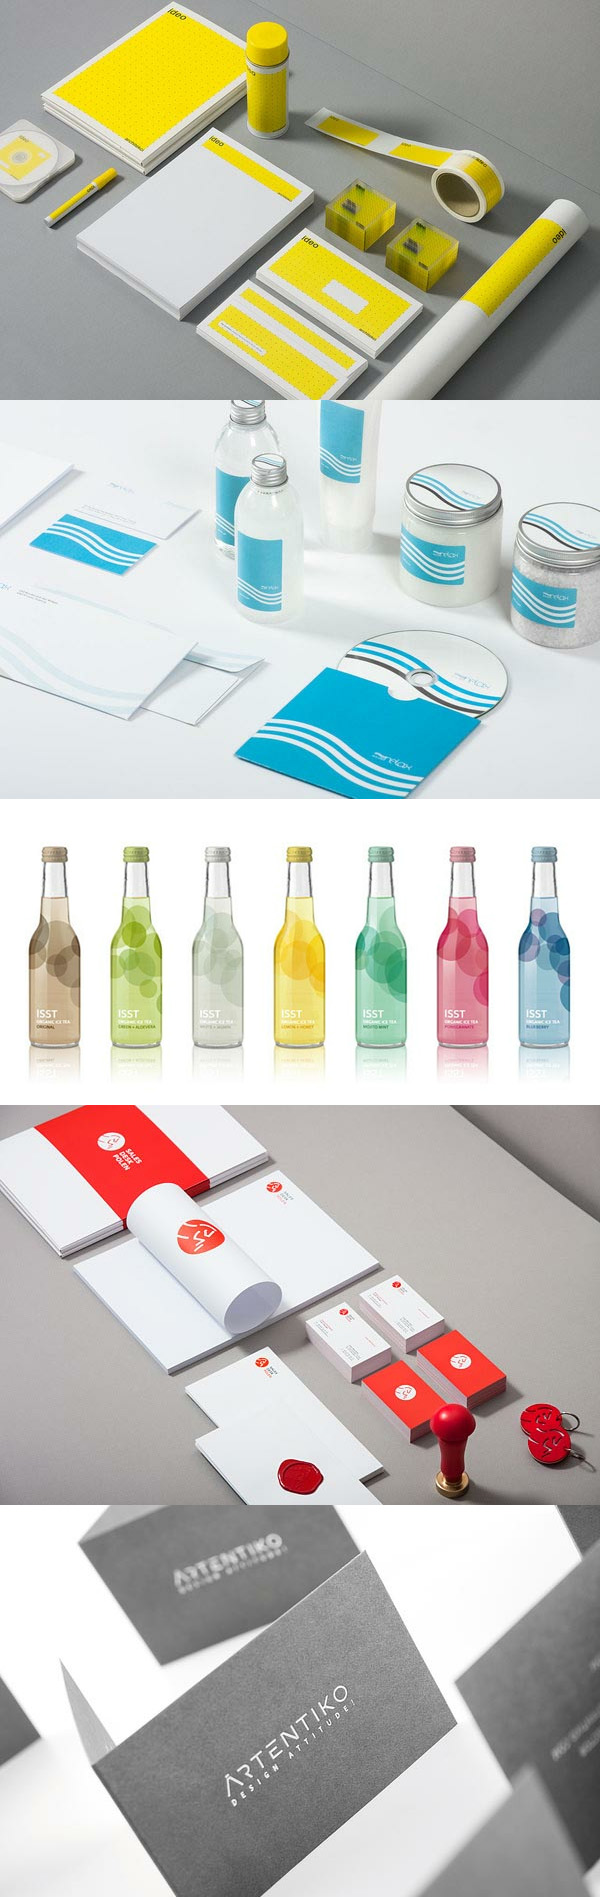 Brand and Packaging Design by Artentiko